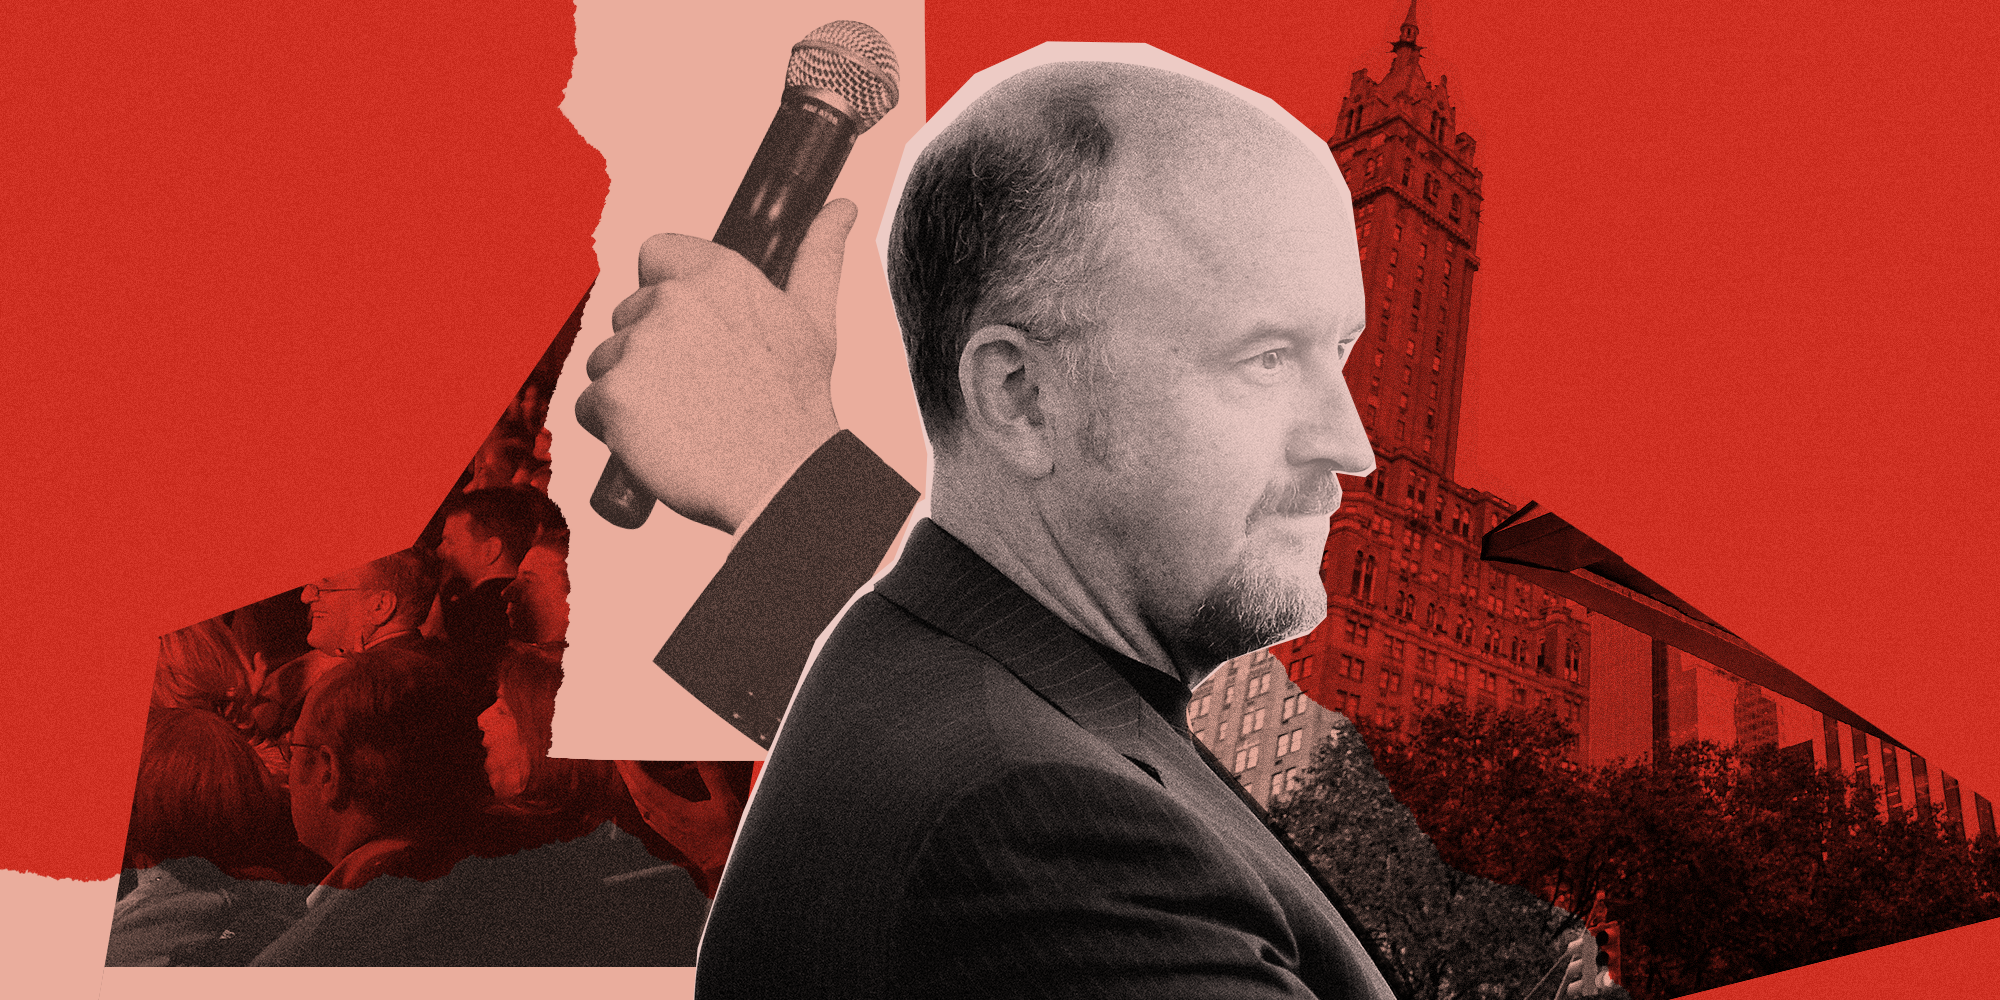 Why Can't Men Like Louis C.K. Accept Their Ideas Are Outdated?